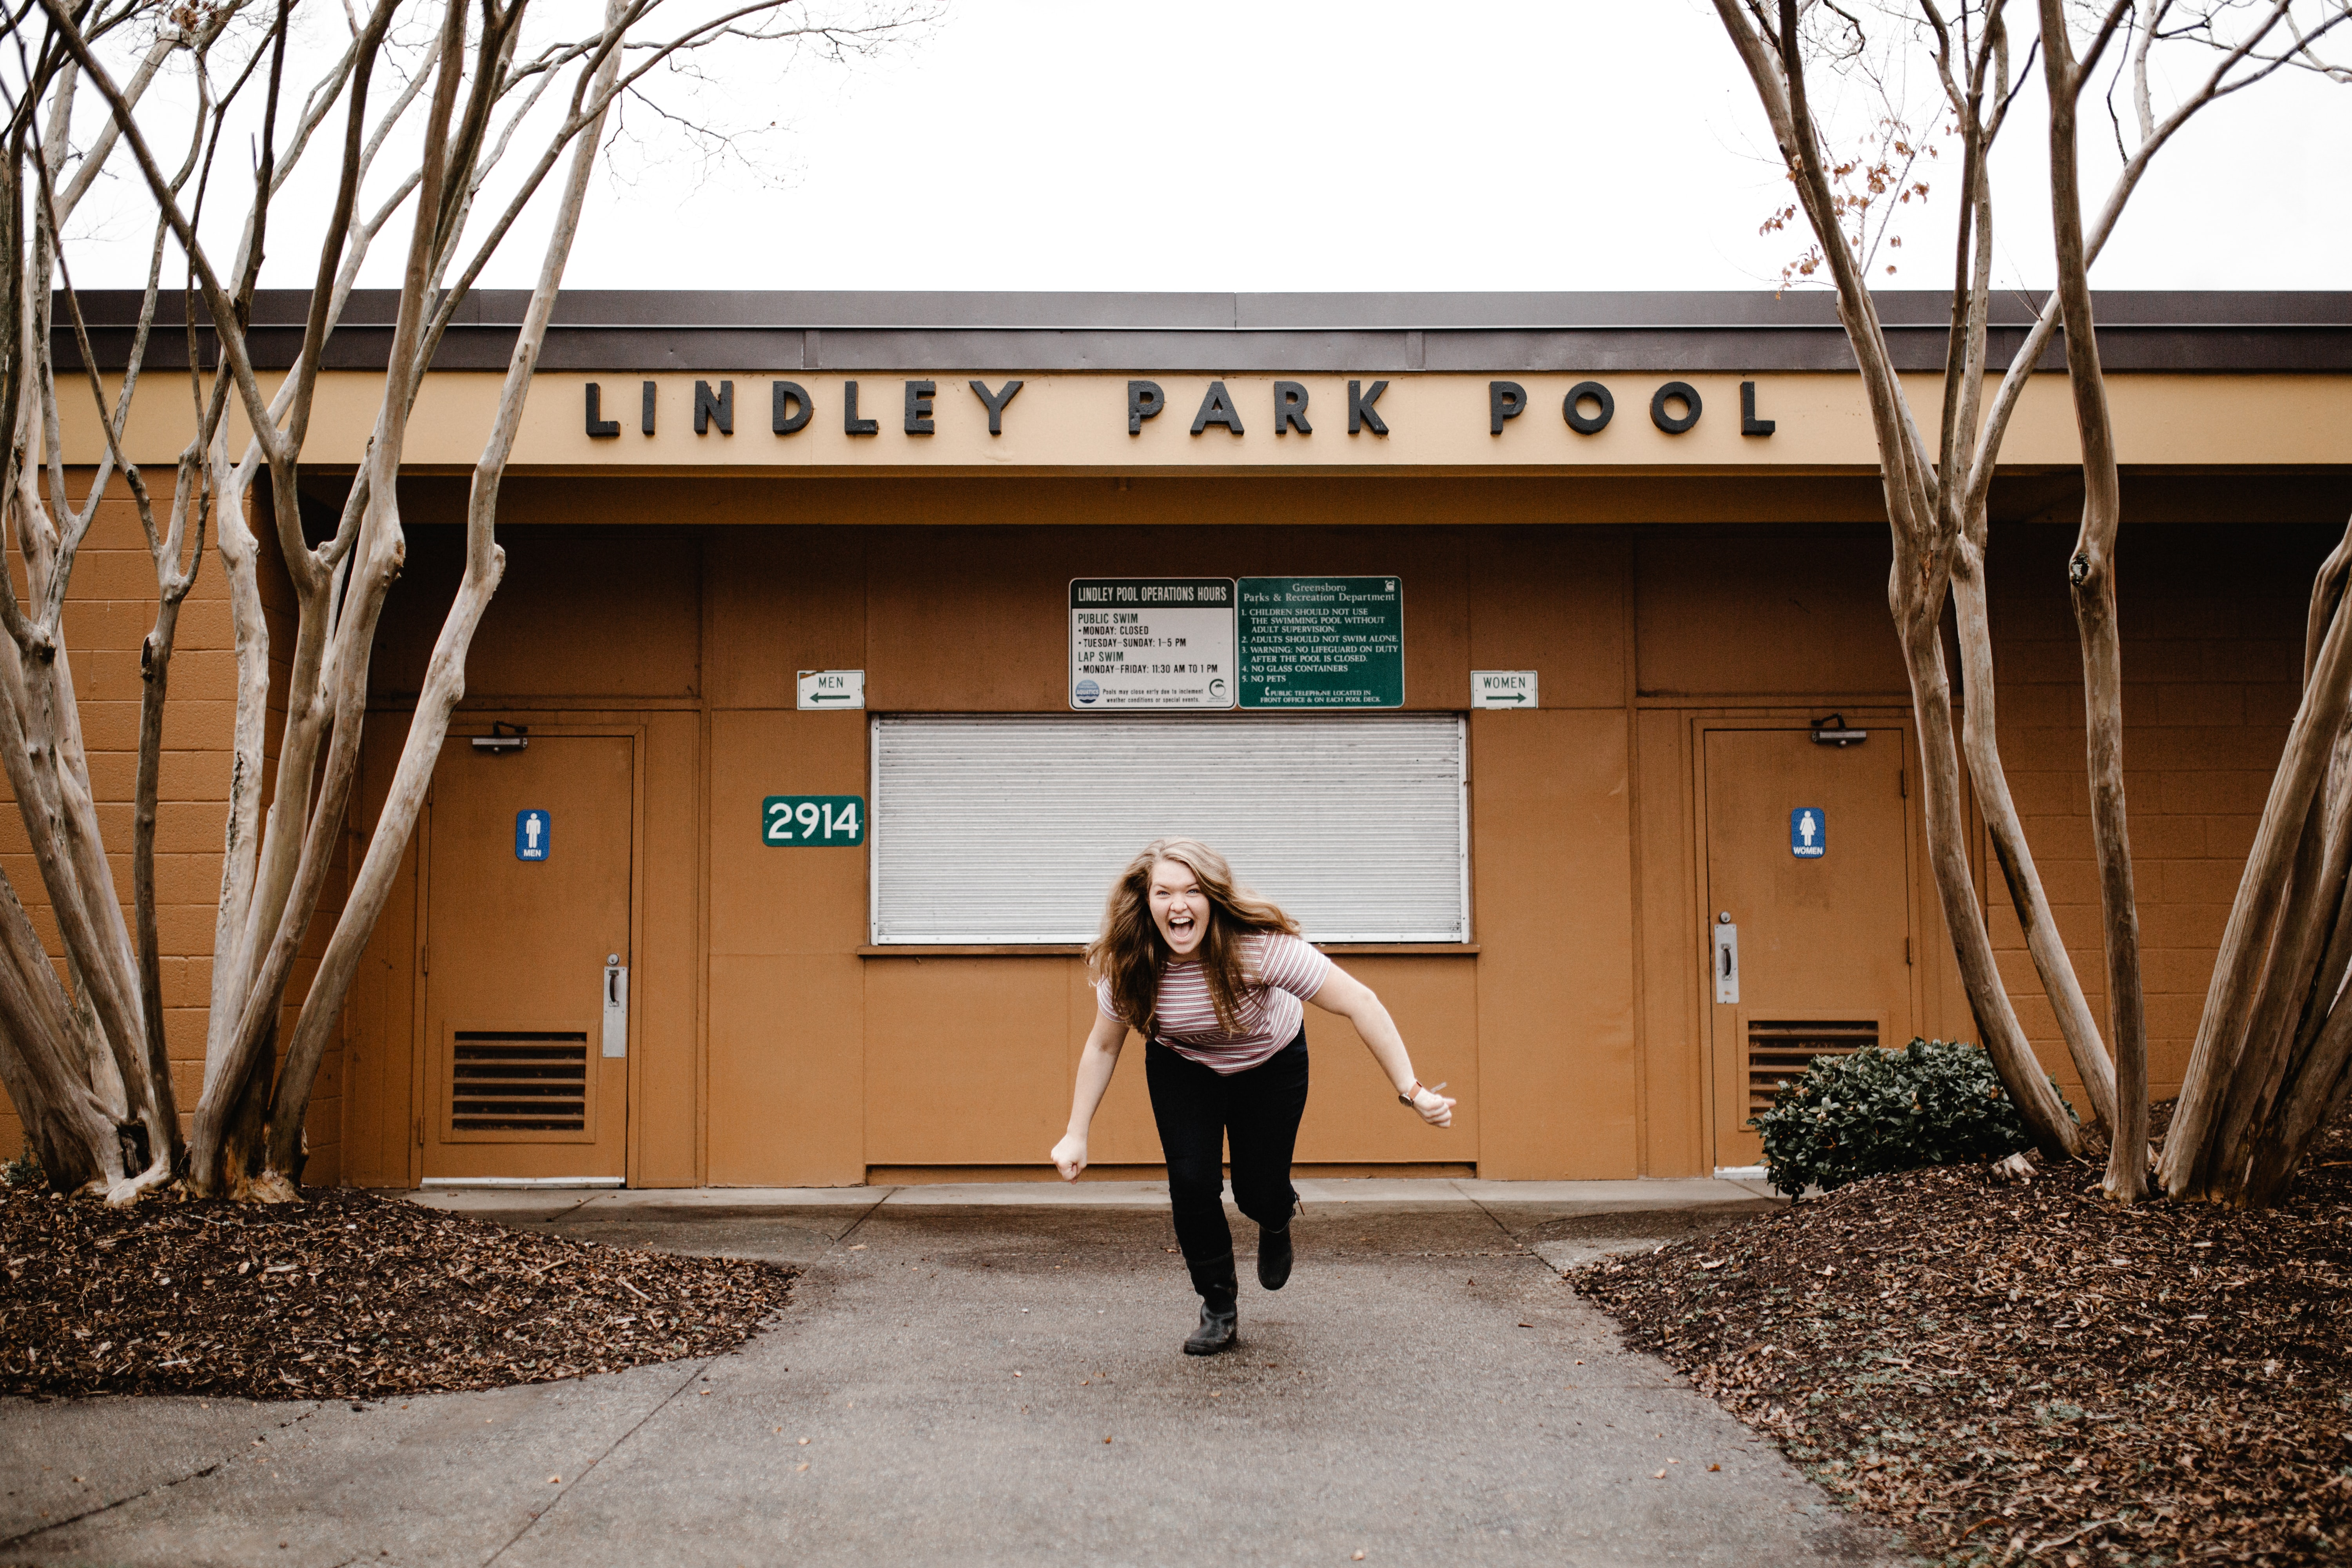 A woman laughs while lunging forward in front of the bathrooms at the Lindley Park pool